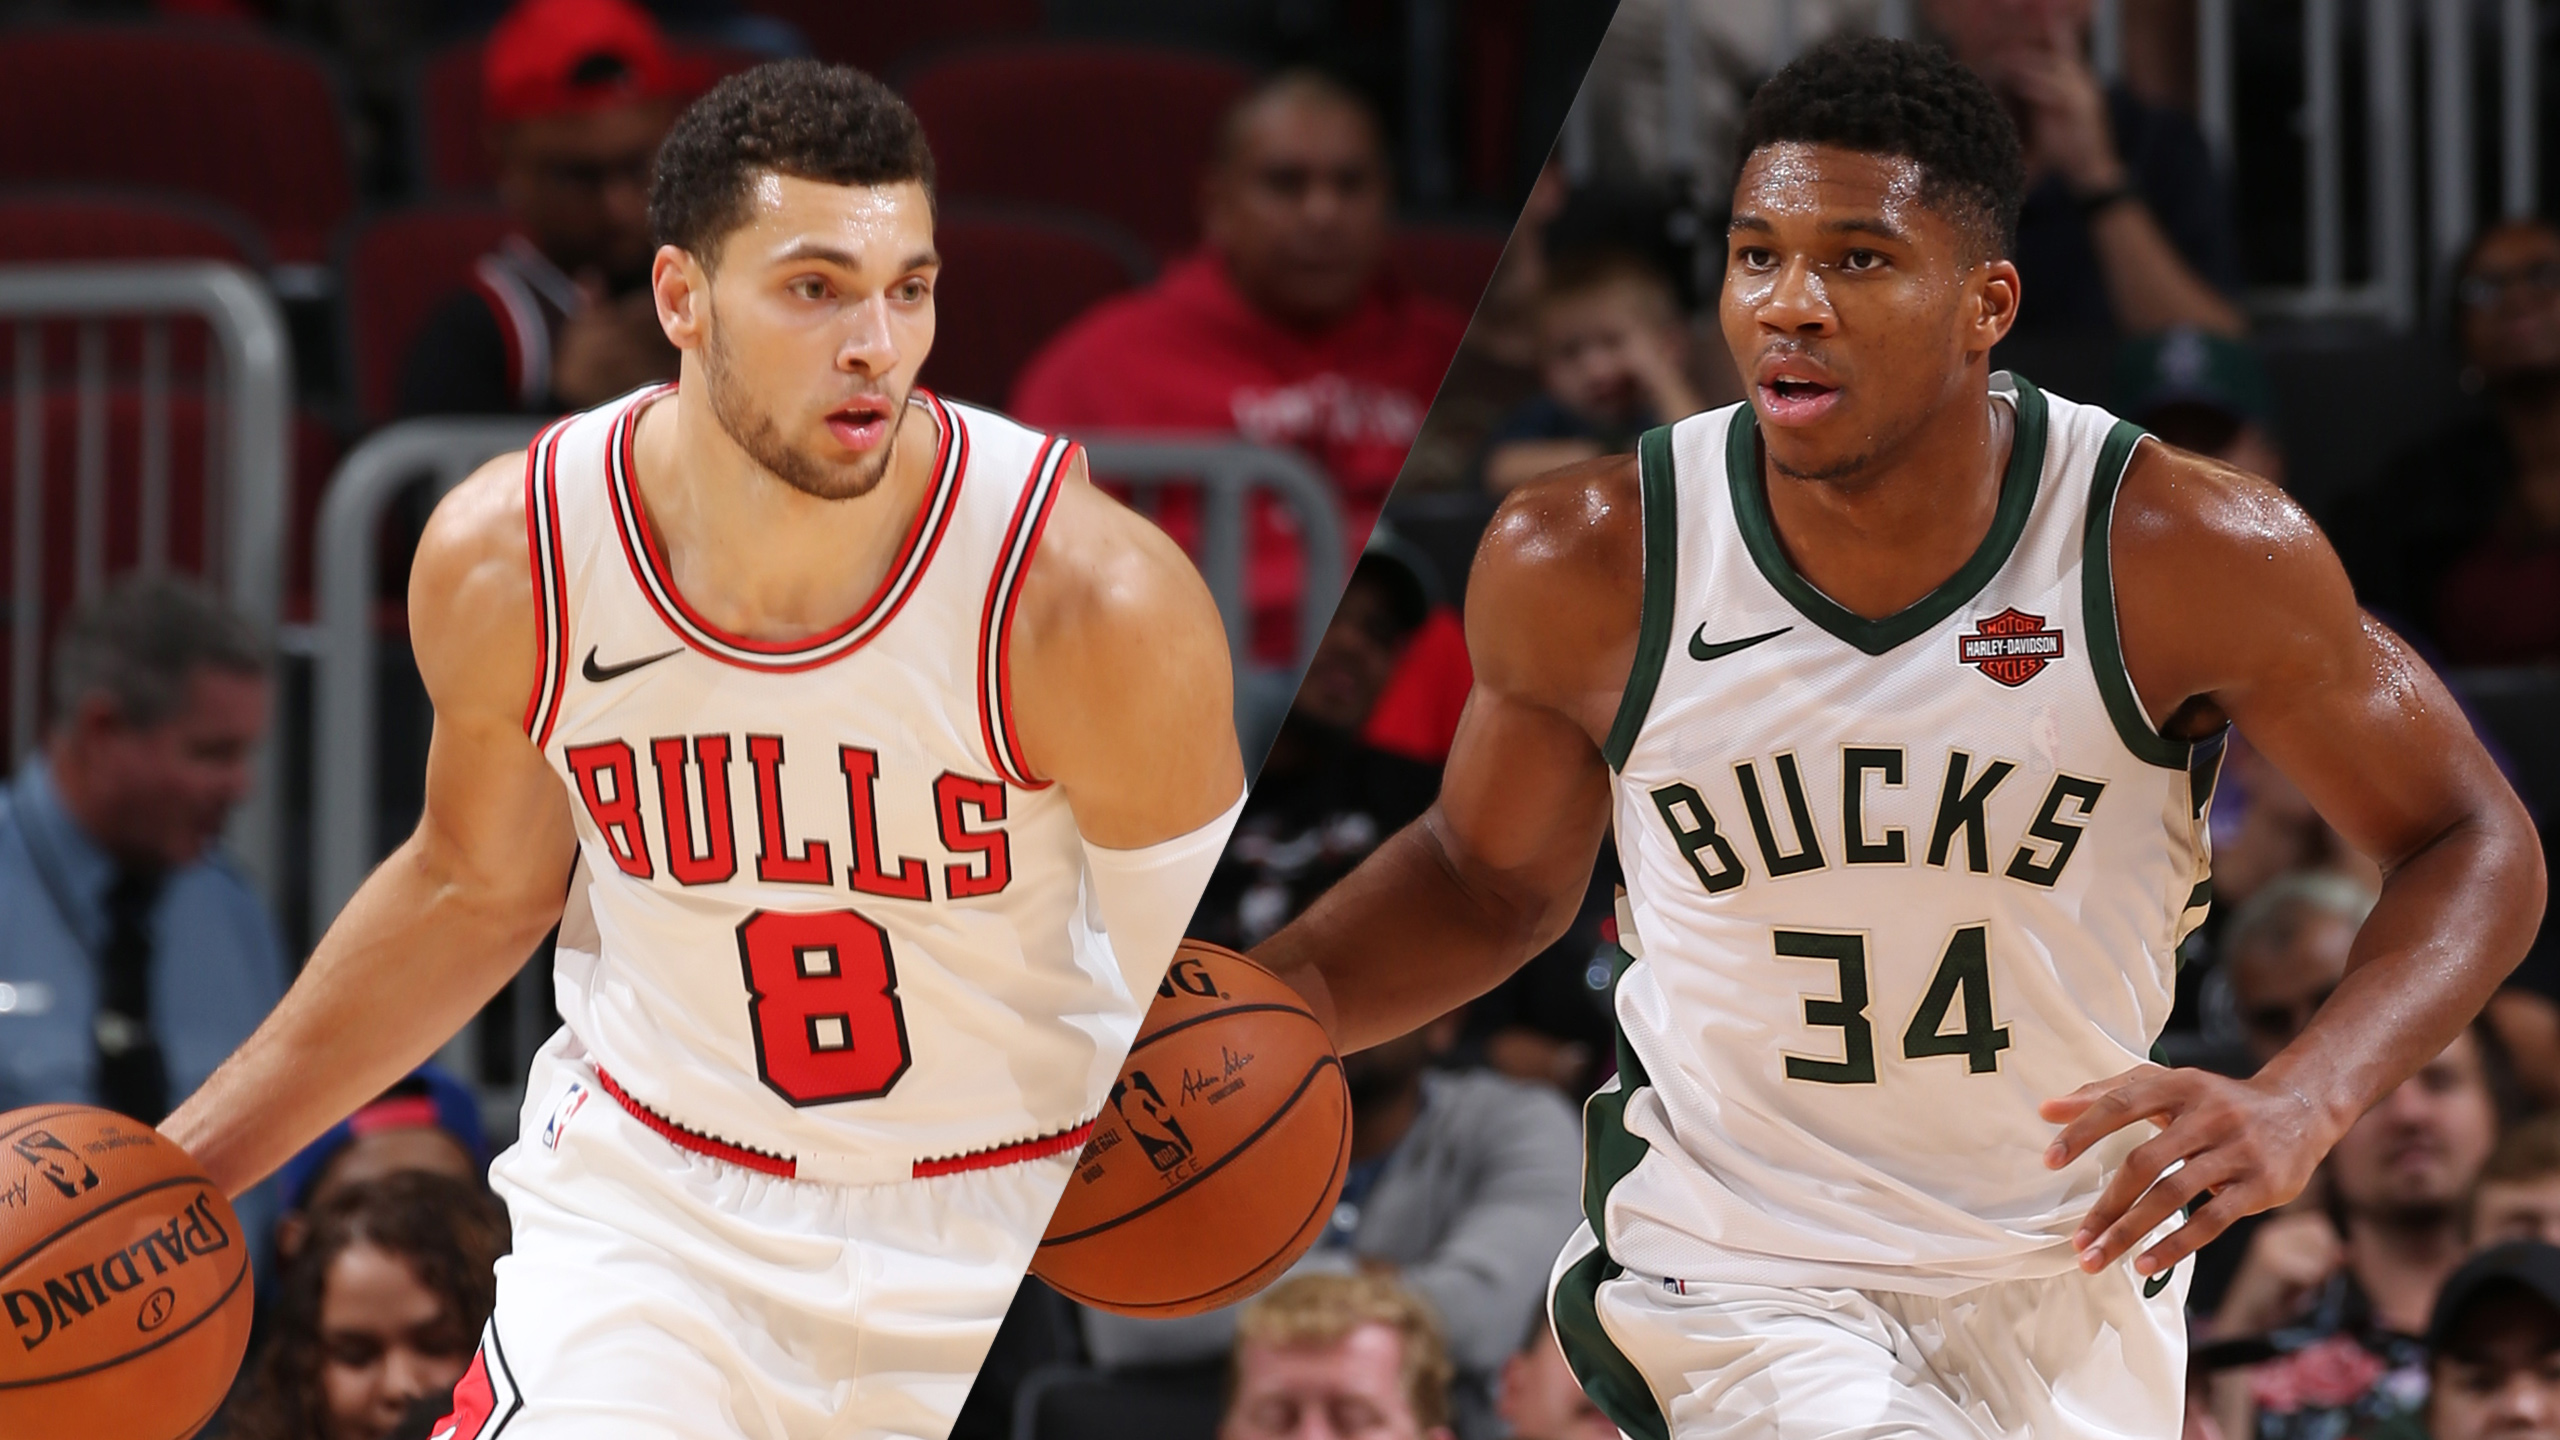 Chicago Bulls vs. Milwaukee Bucks